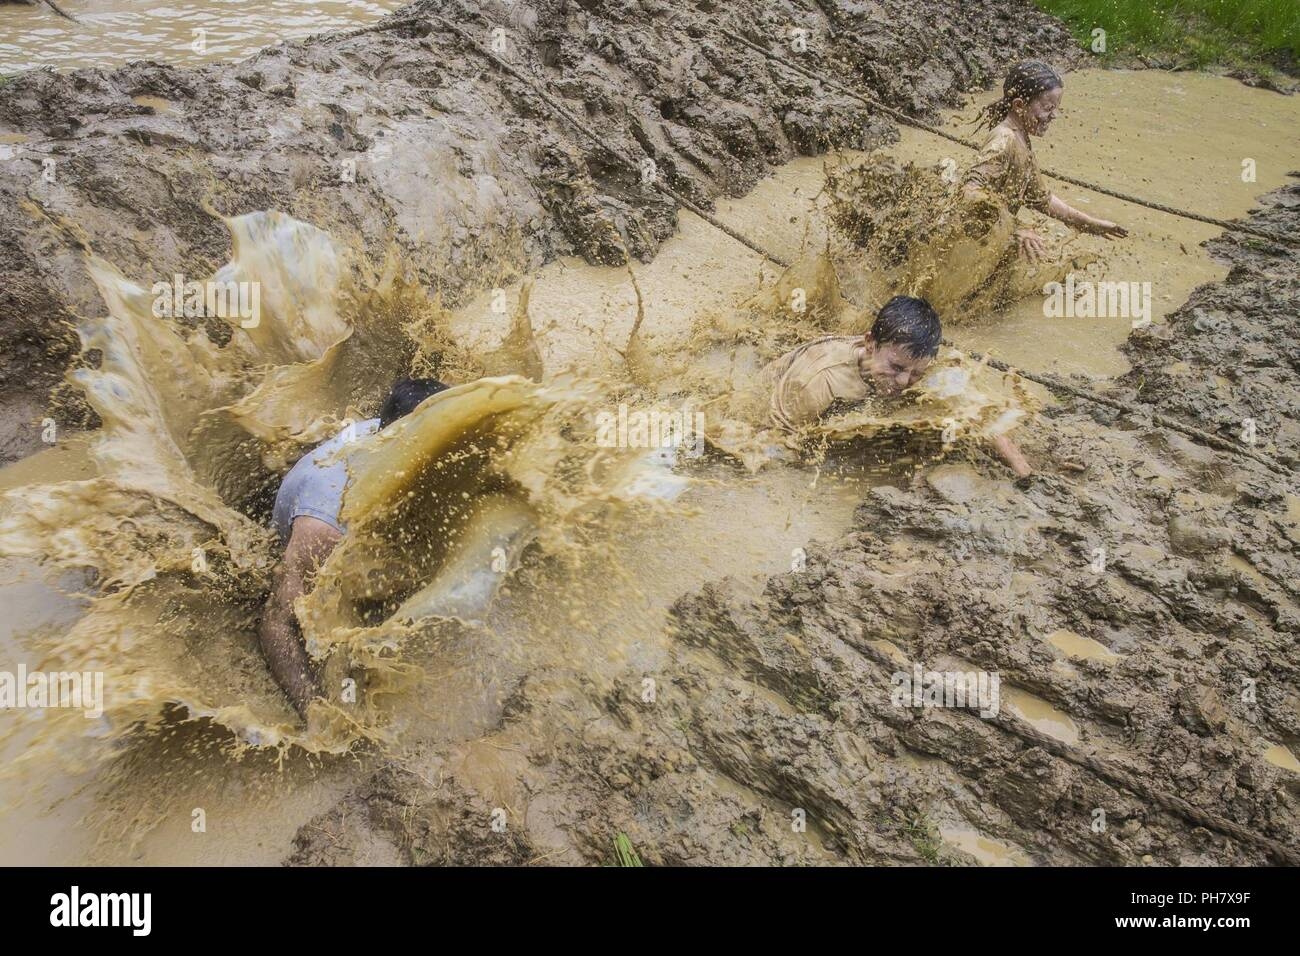 Participants jump into a mud pit during the annual Marine Corps Marathon (MCM) Run Amuck at Marine Corps Base Quantico, Va., June 23, 2018. The Run Amuck is the MCM's messiest mud and obstacle course consisting of a four-mile trail with 21 challenges to include body weight exercises, rope climbs, and mud pits. - Stock Image